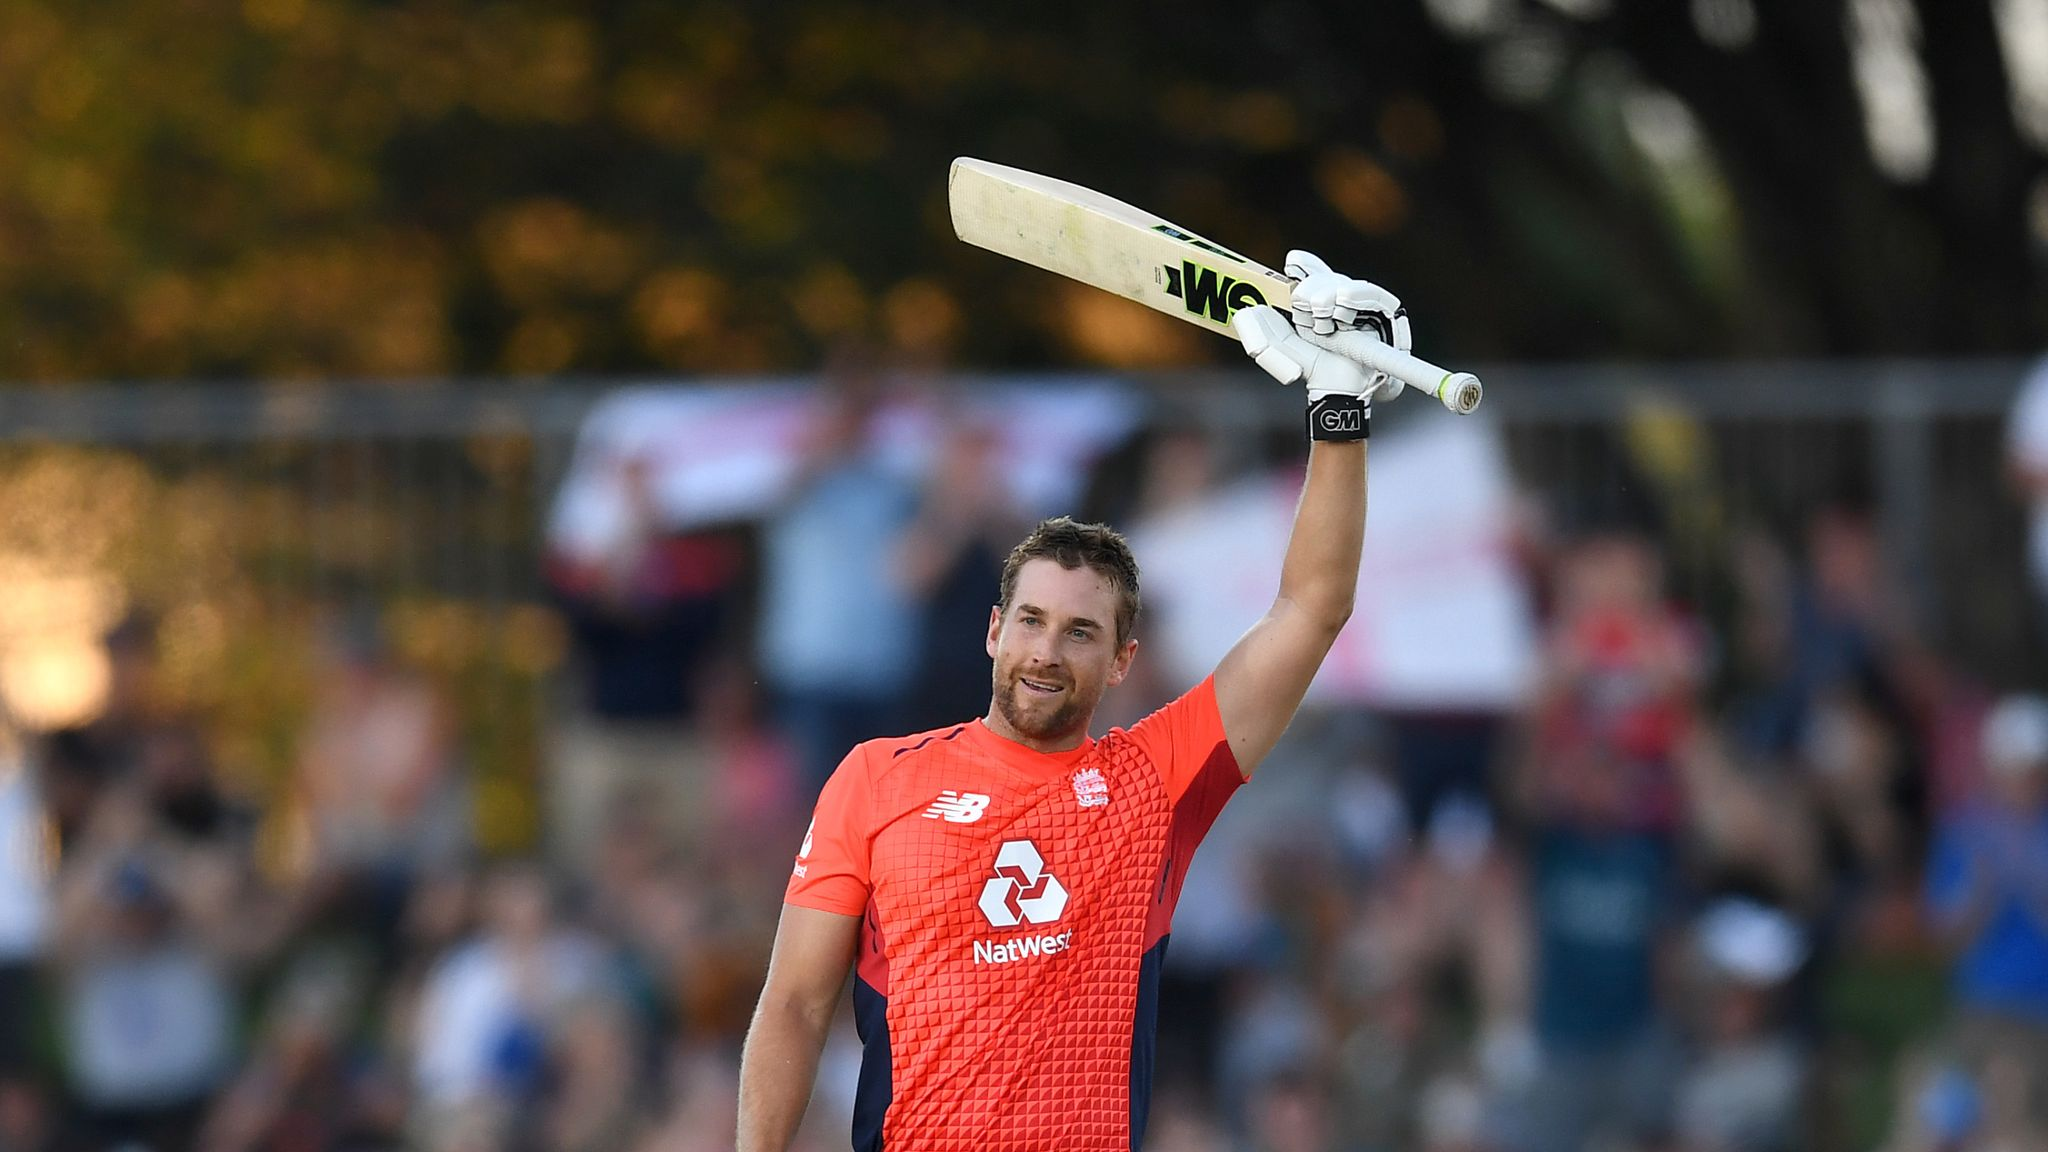 England's Dawid Malan up to third in ICC T20I batting rankings after century